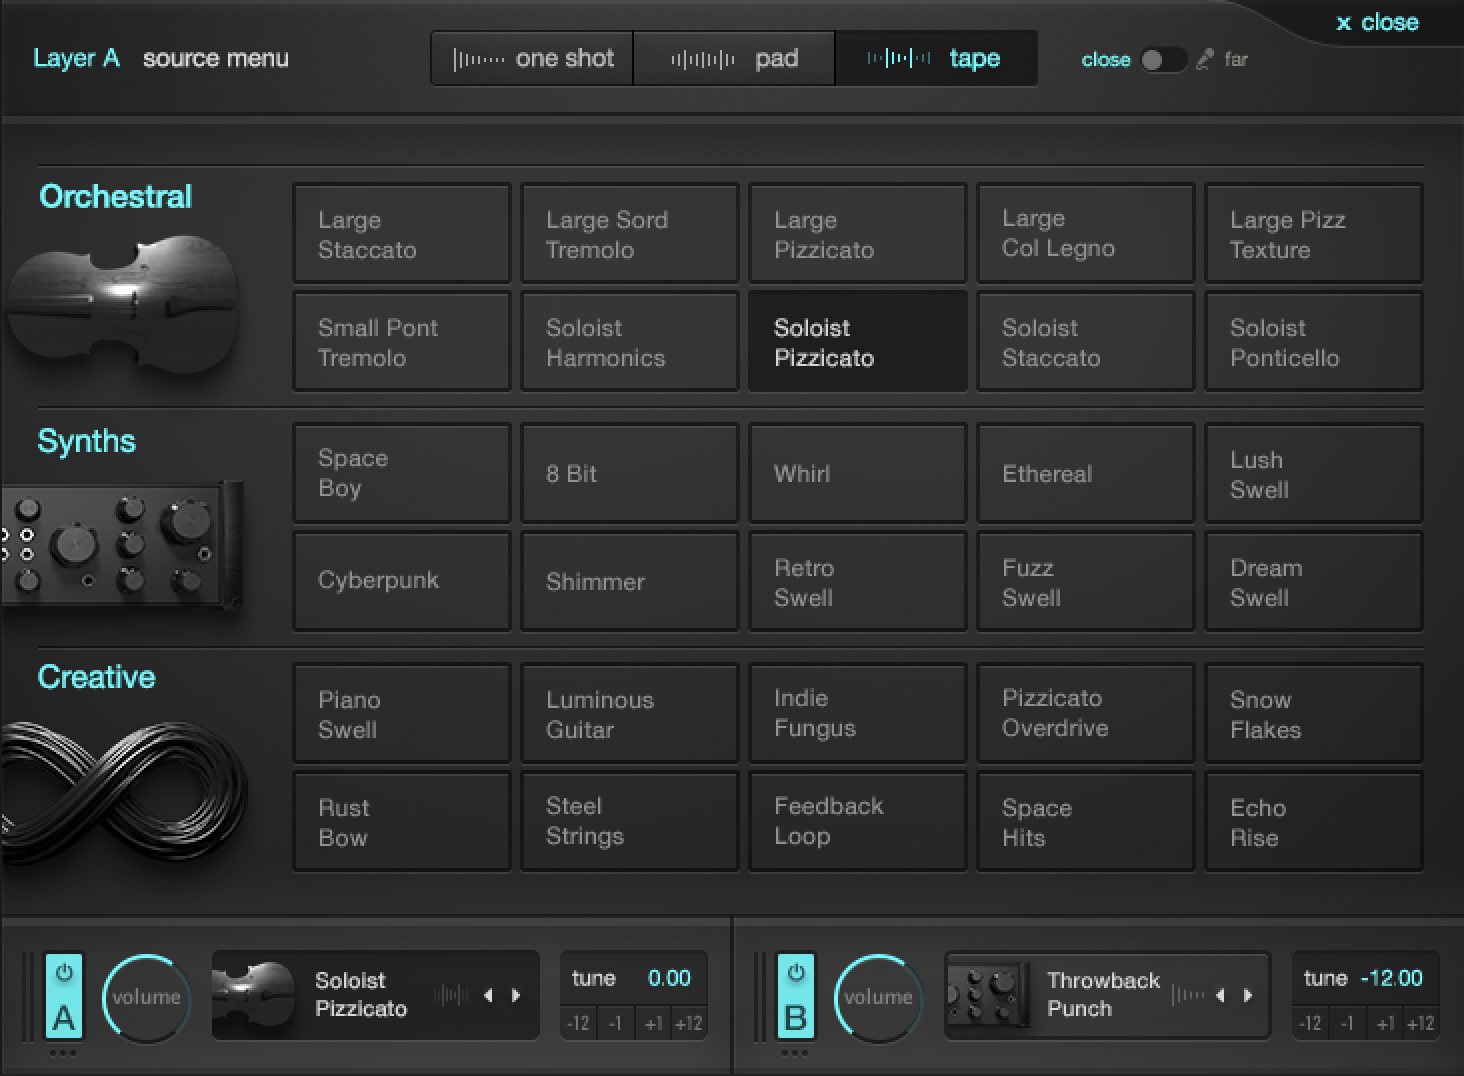 Output Analog Strings Review Pro Audio Files Electronic Selector For 8 Sources Selectors Reveals A Matrix Of Possible Organized Into Three Main Groups One Shots Pads And Tape Loops From Each Group You Can Choose